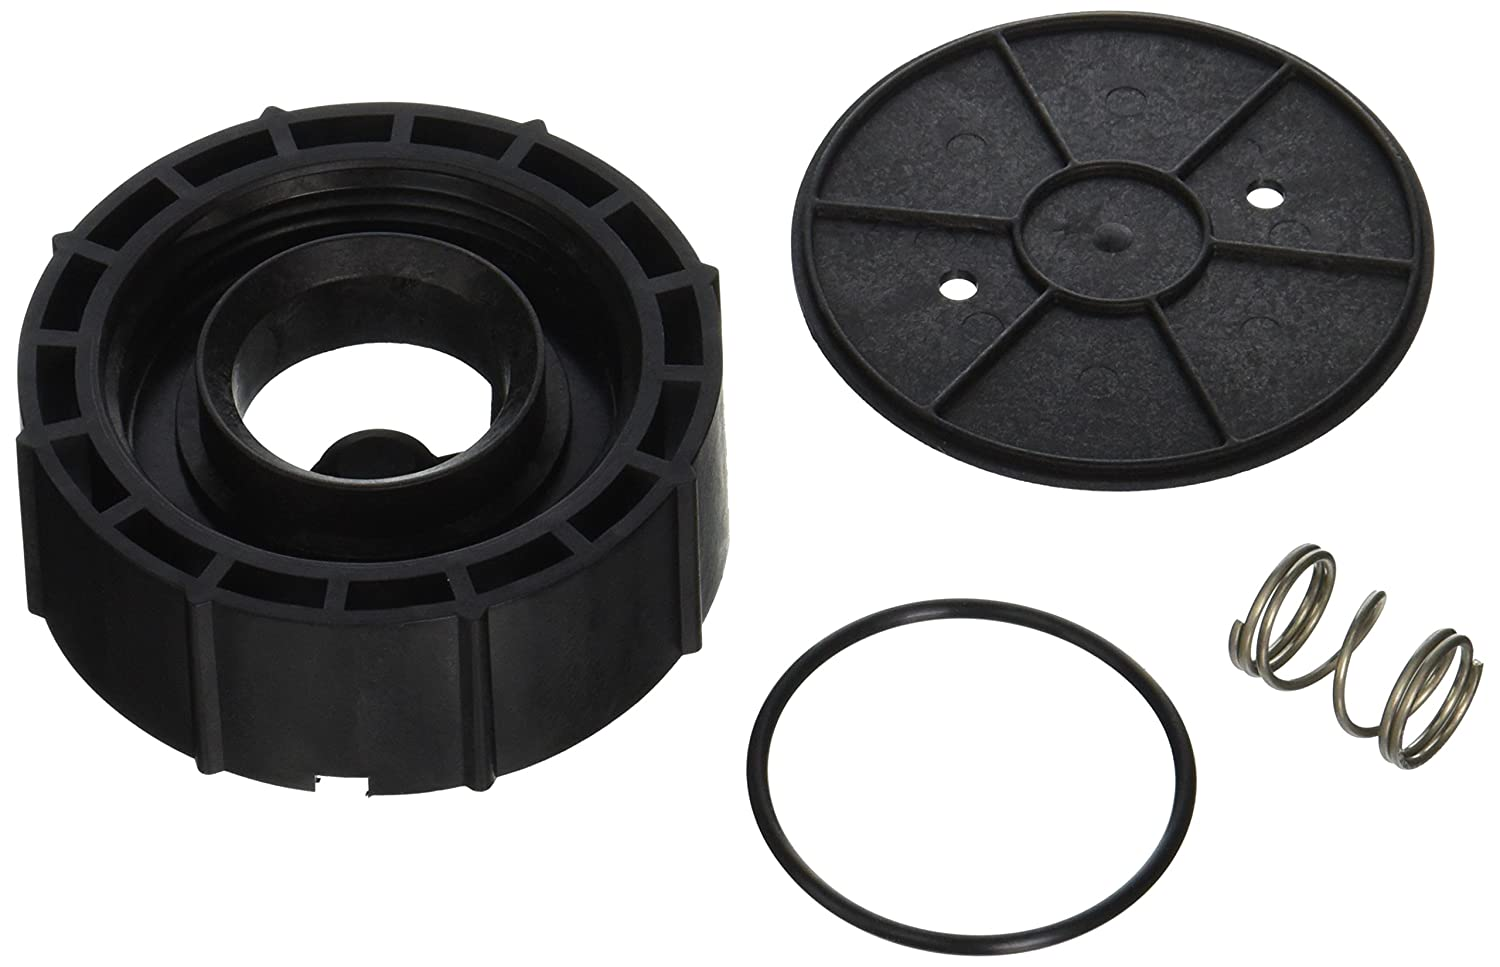 Watts 0887701 Bonnet Assembly Repair Kit